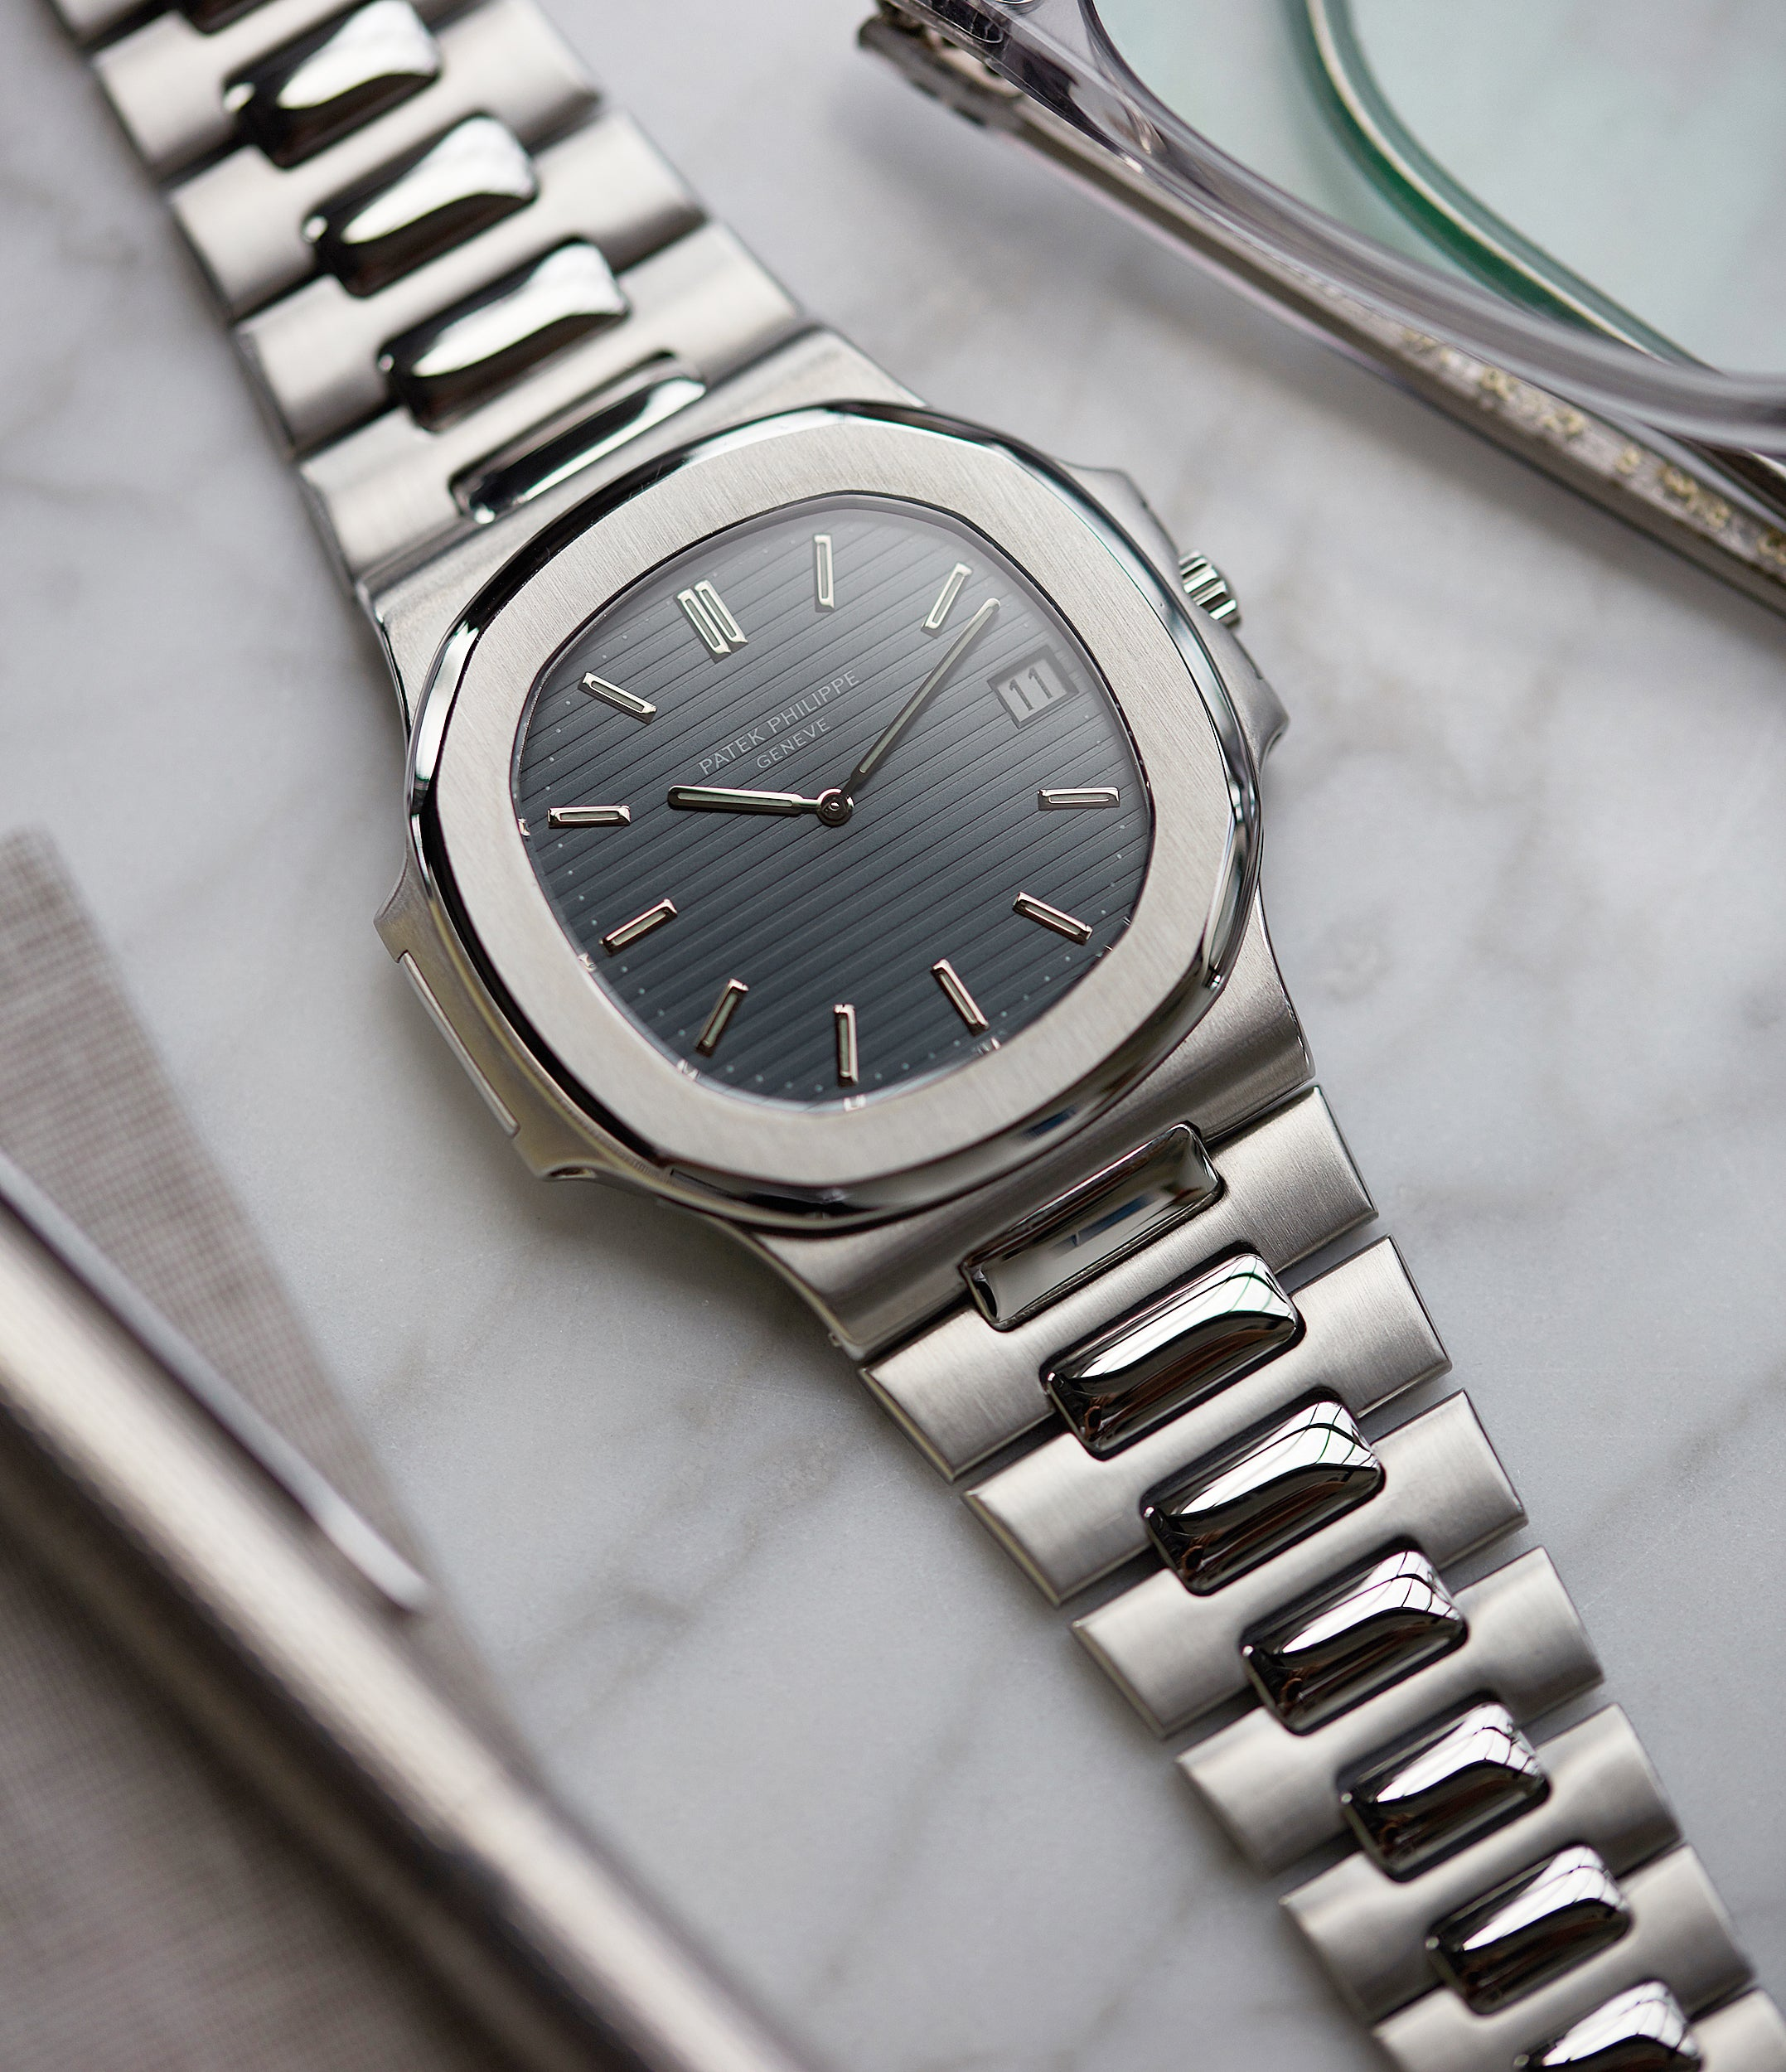 rare Patek Philippe Nautilus 3700/001A steel sport watch full set for sale online at A Collected Man London UK specialist of rare vintage watches